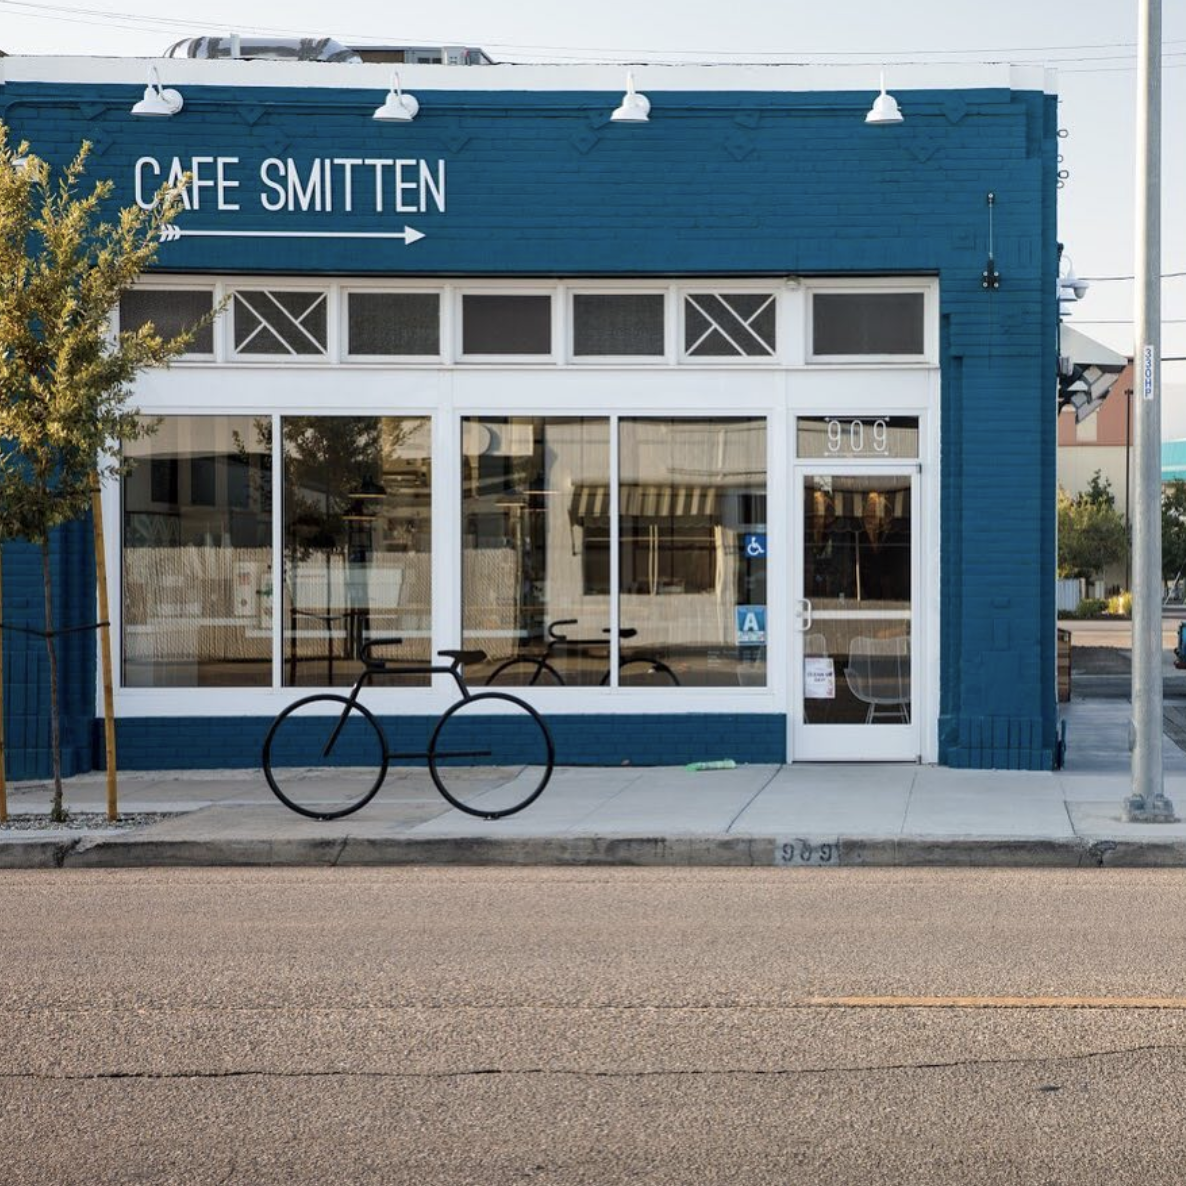 Cafe smitten - Sage Equities had the vision to turn a dusty brick building that once held an old tire shop into Cafe Smitten. This bustling urban coffee shop, located in the Eastchester neighborhood of Downtown Bakersfield, is one of Bakersfield's most beloved gathering places.